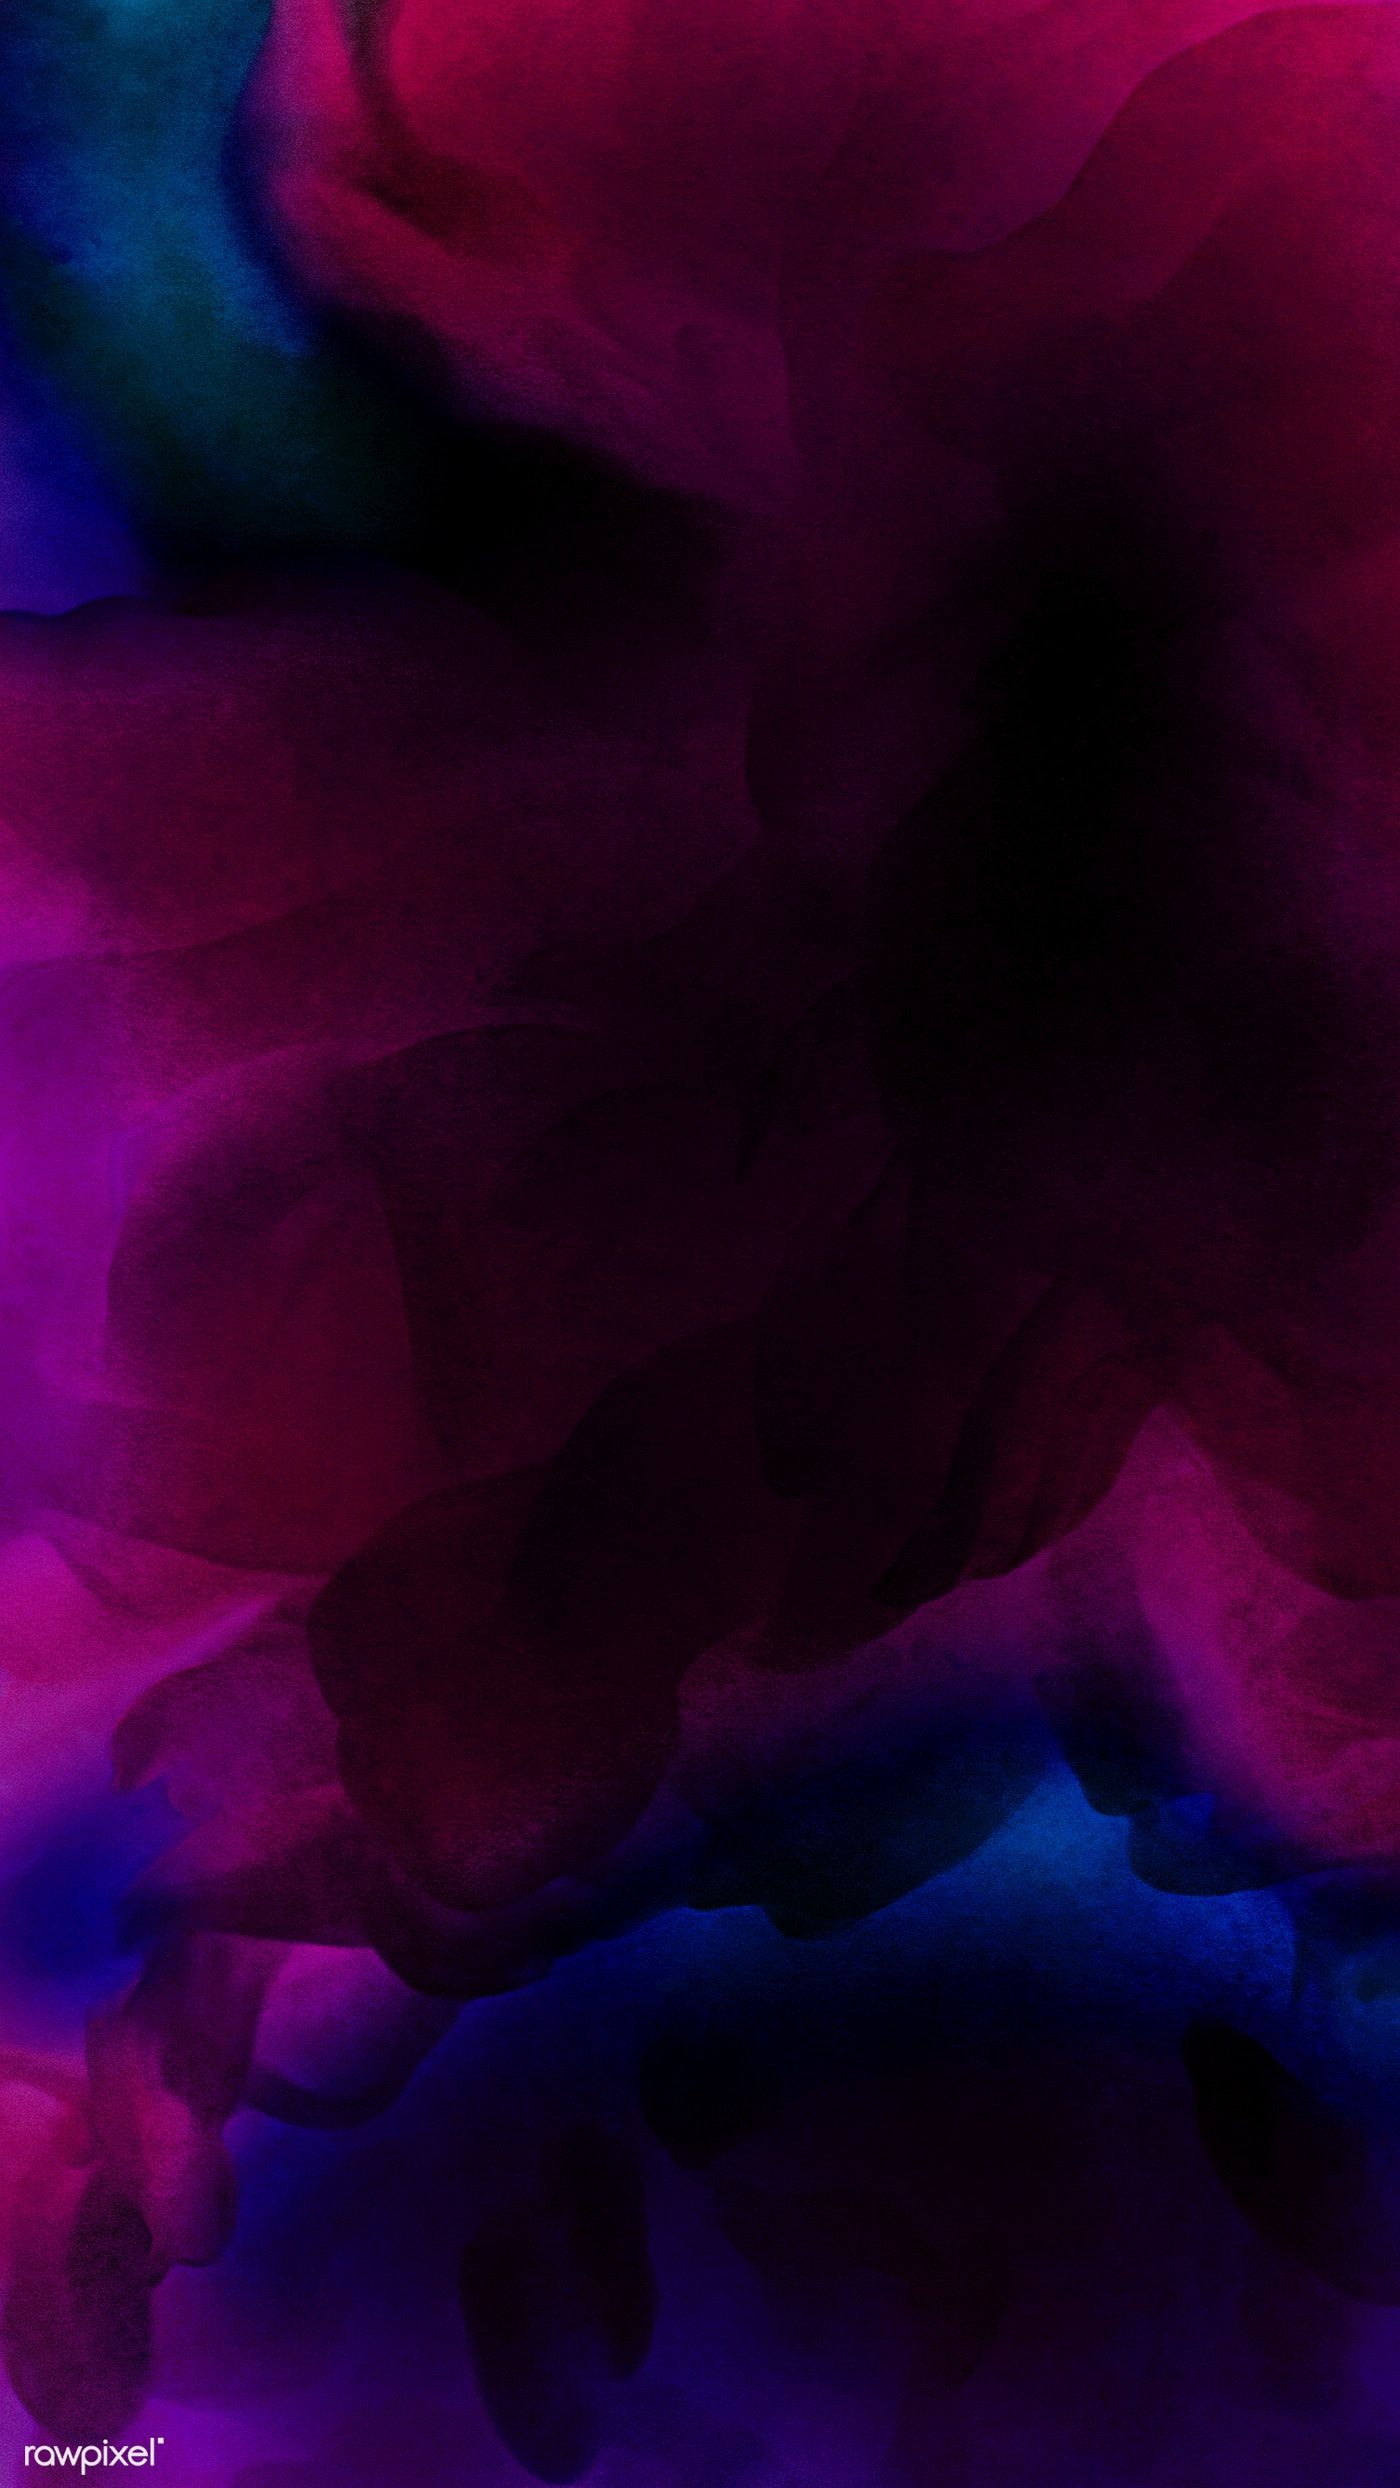 Download Premium Illustration Of Abstract Dark Pink And Blue